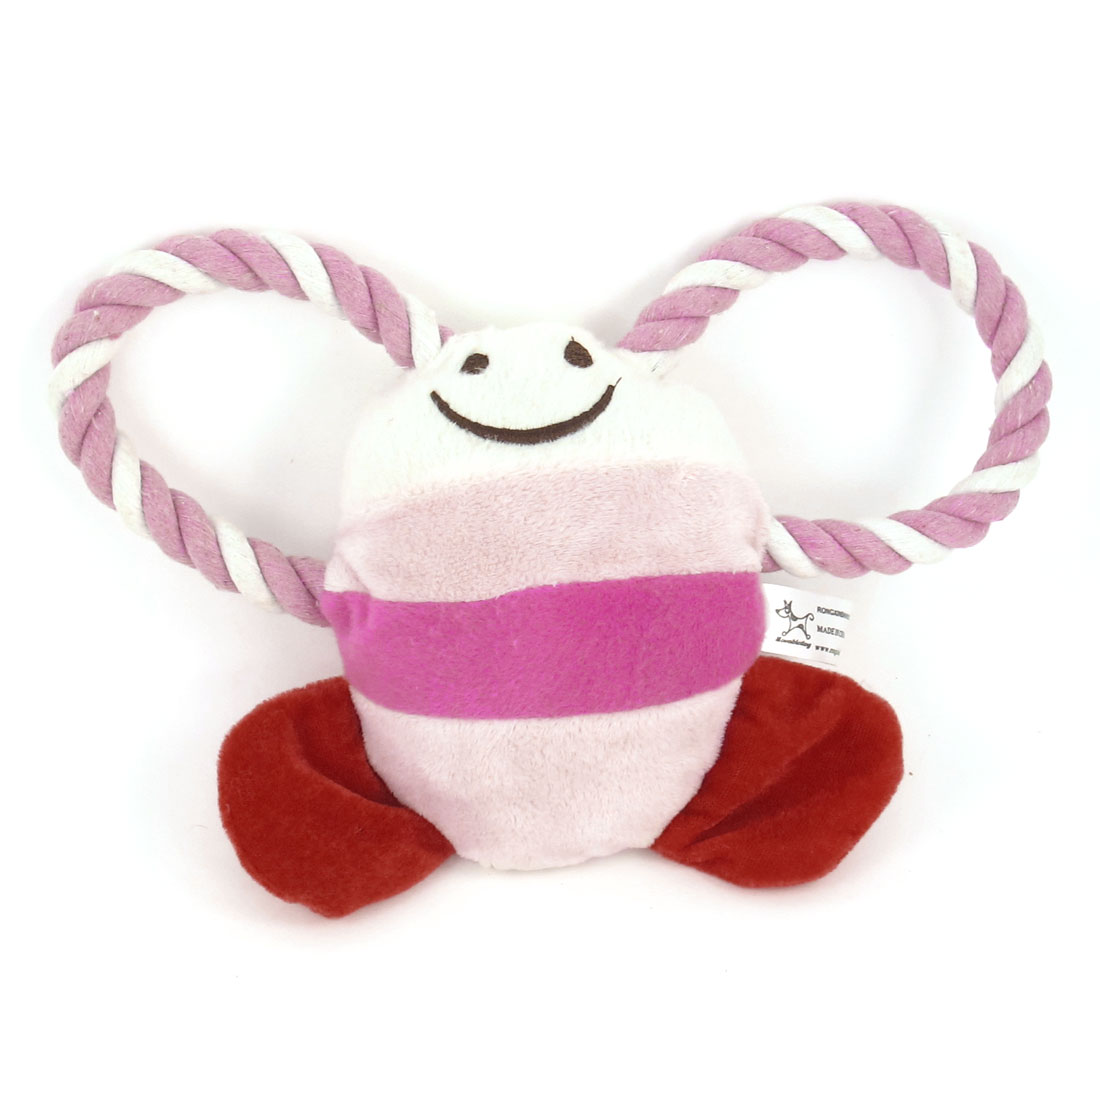 Pink Plush Twisted Tug Rope Tropical Fish Design Squeeze Squeak Toy for Pet Dog